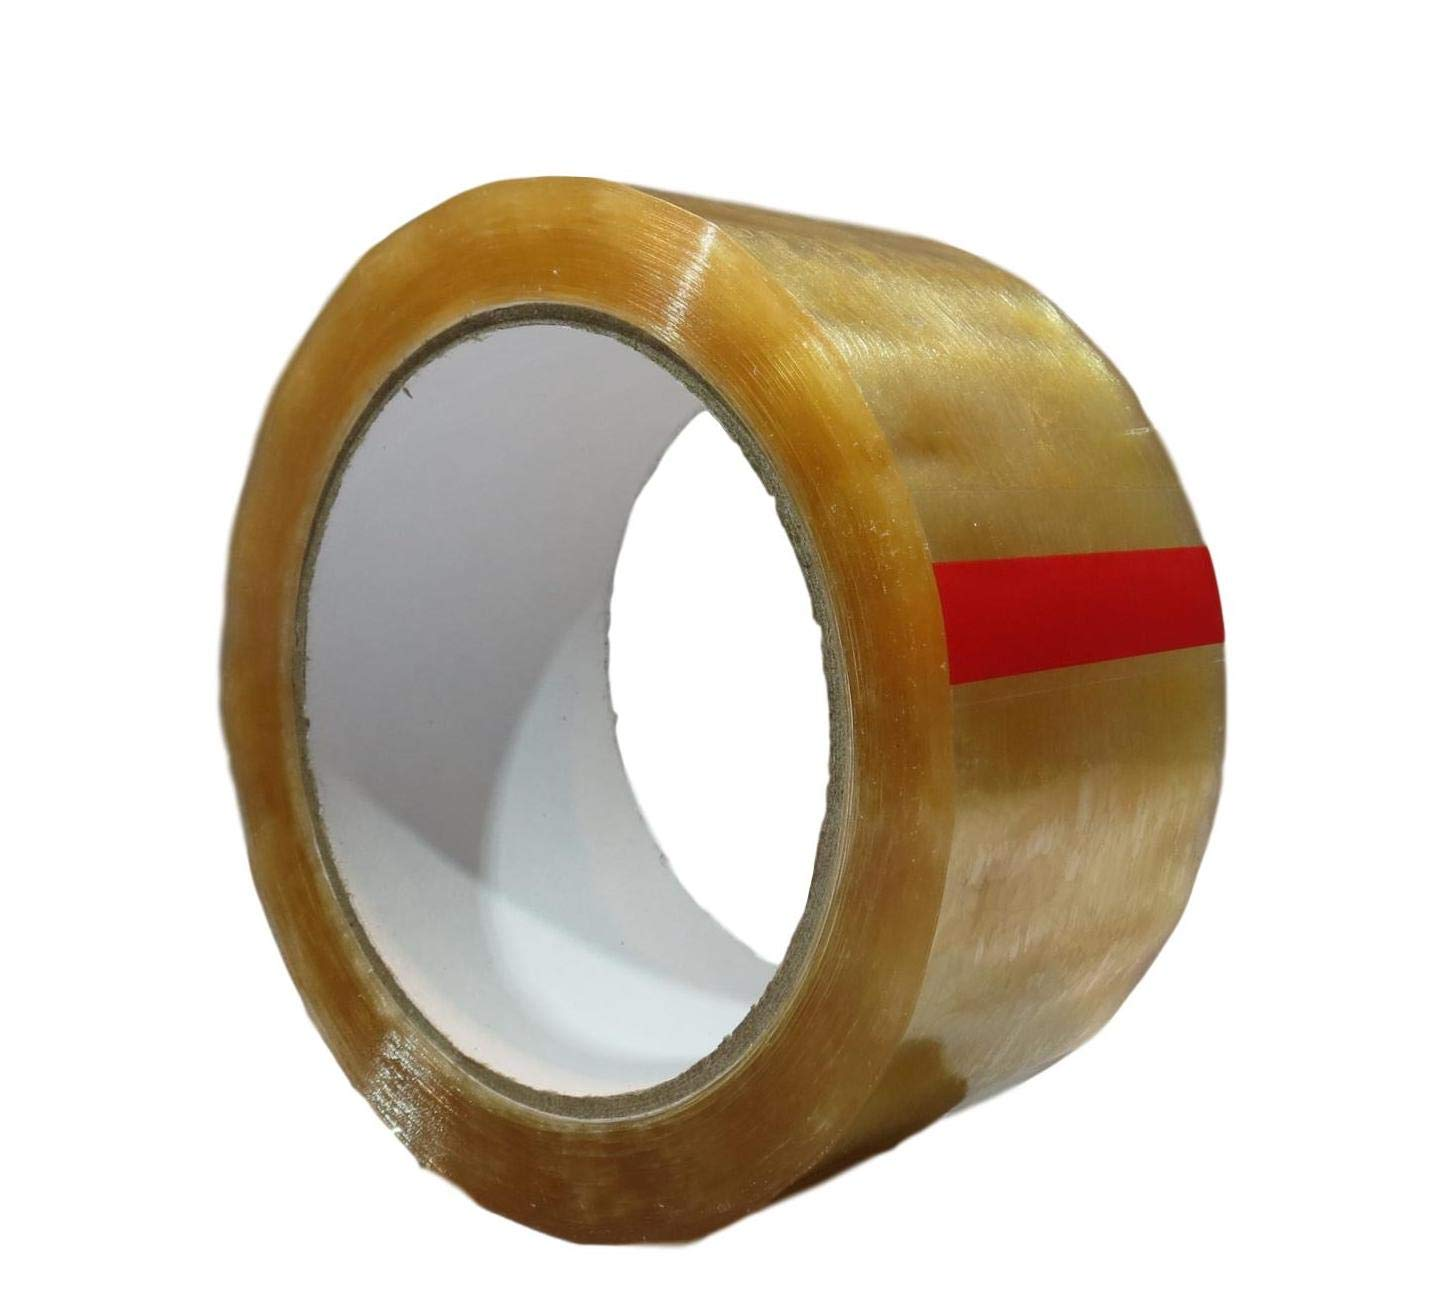 T.R.U. CELLO Biodegradable Cellophane Clear Stationery/Light Duty Packaging Cellulose Sealing Tape: 2 in. (W) x 72 yds. (L) - 3 in. core (Pack of 10)